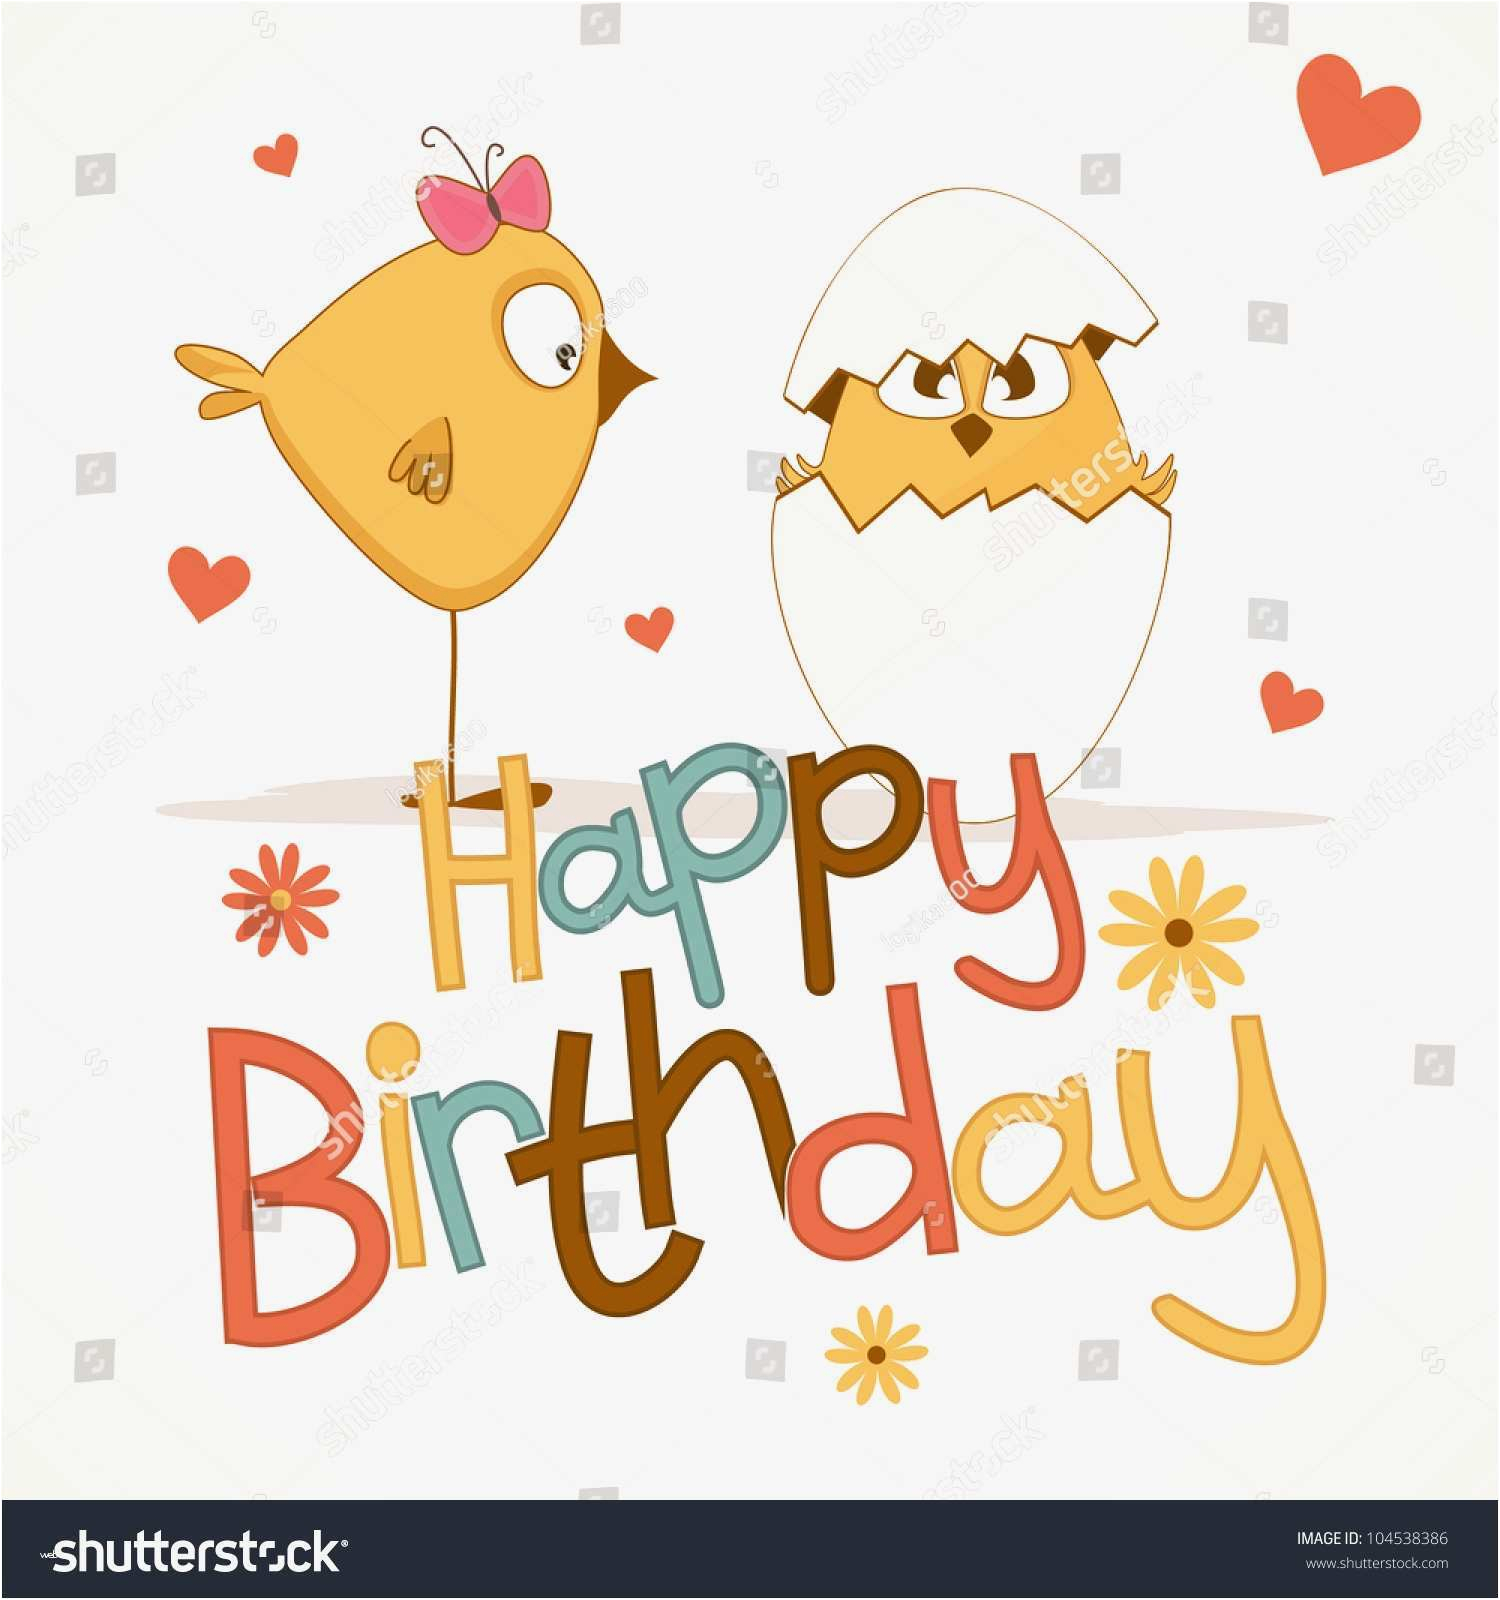 Free Funny Musical Birthday Cards Animated With Music Elegant Cute